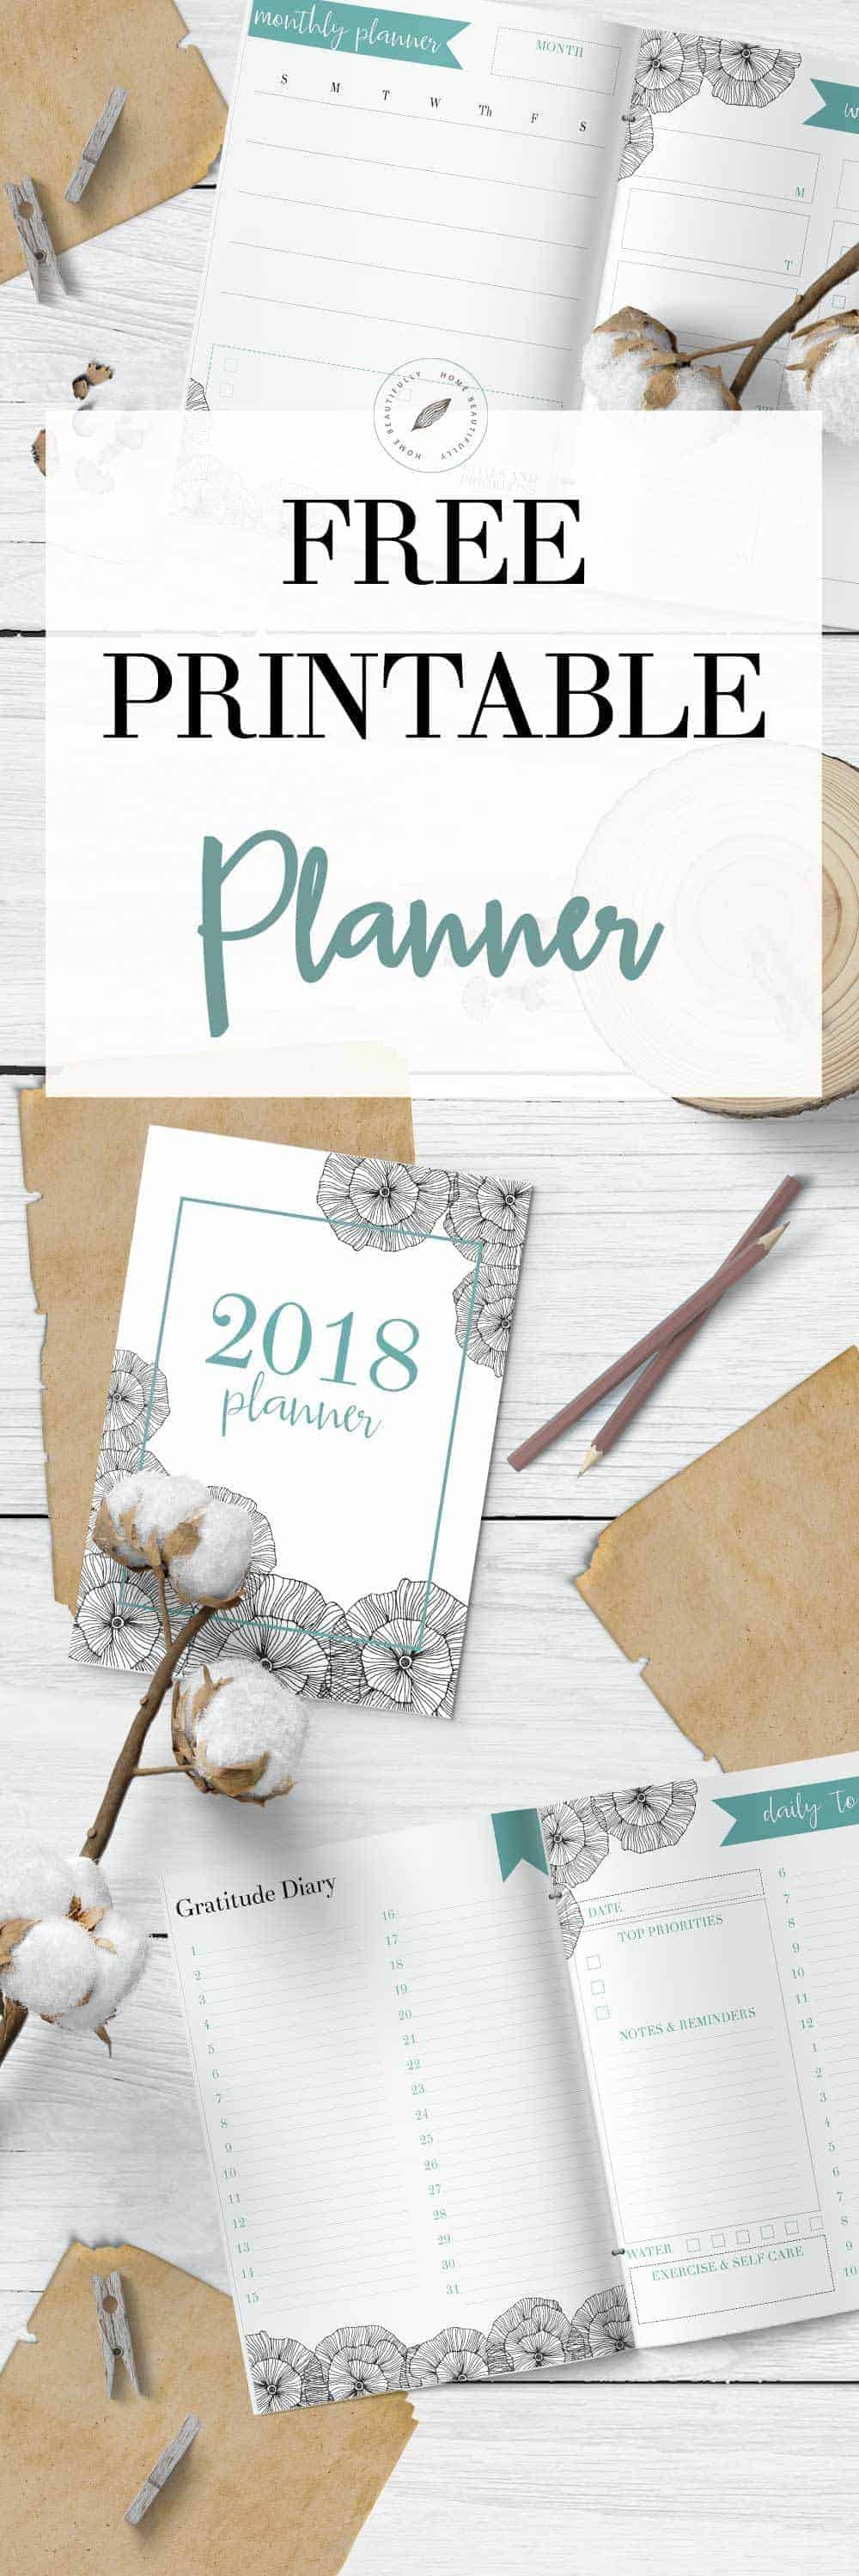 2018 free printable calendar on a wooden background